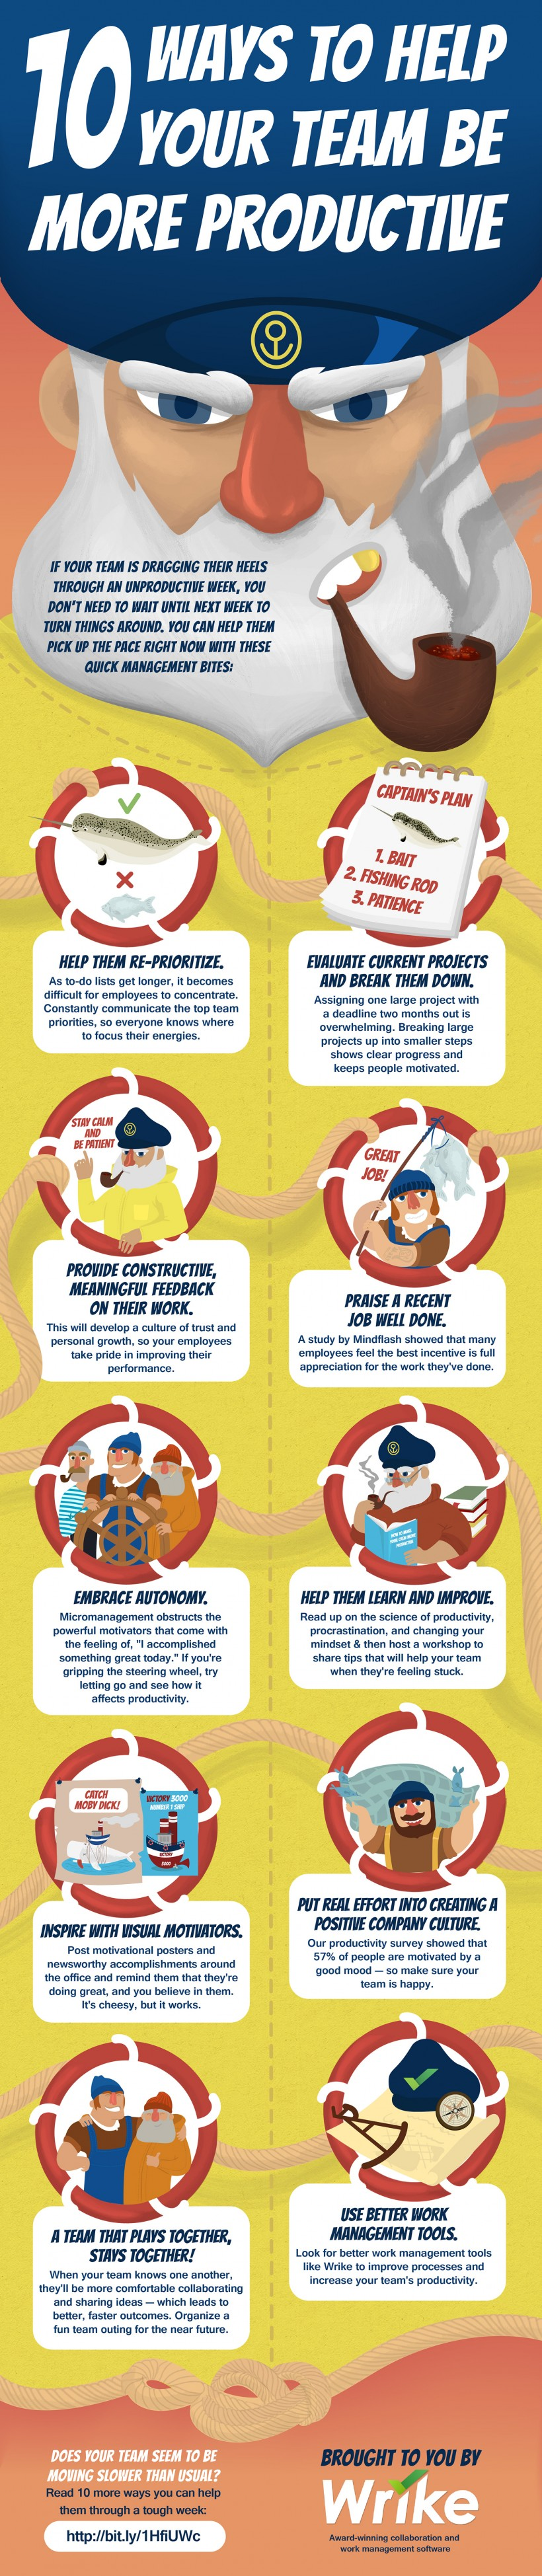 10 Ways to Make Your Team More Productive (#Infographic)